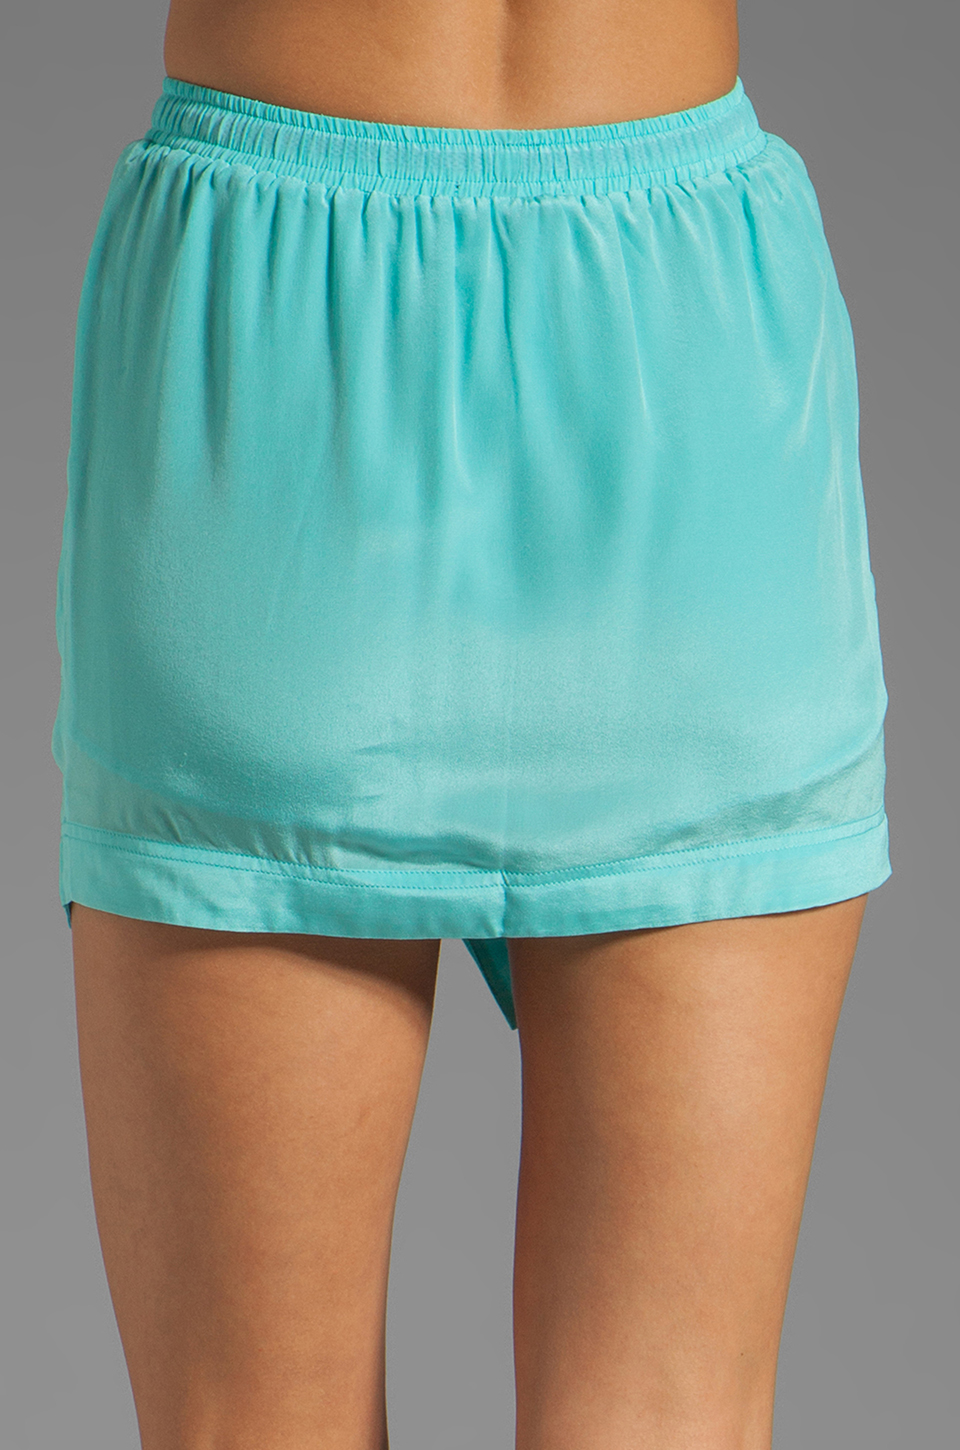 Funktional Achromatic Drawstring Skort in A-Sky